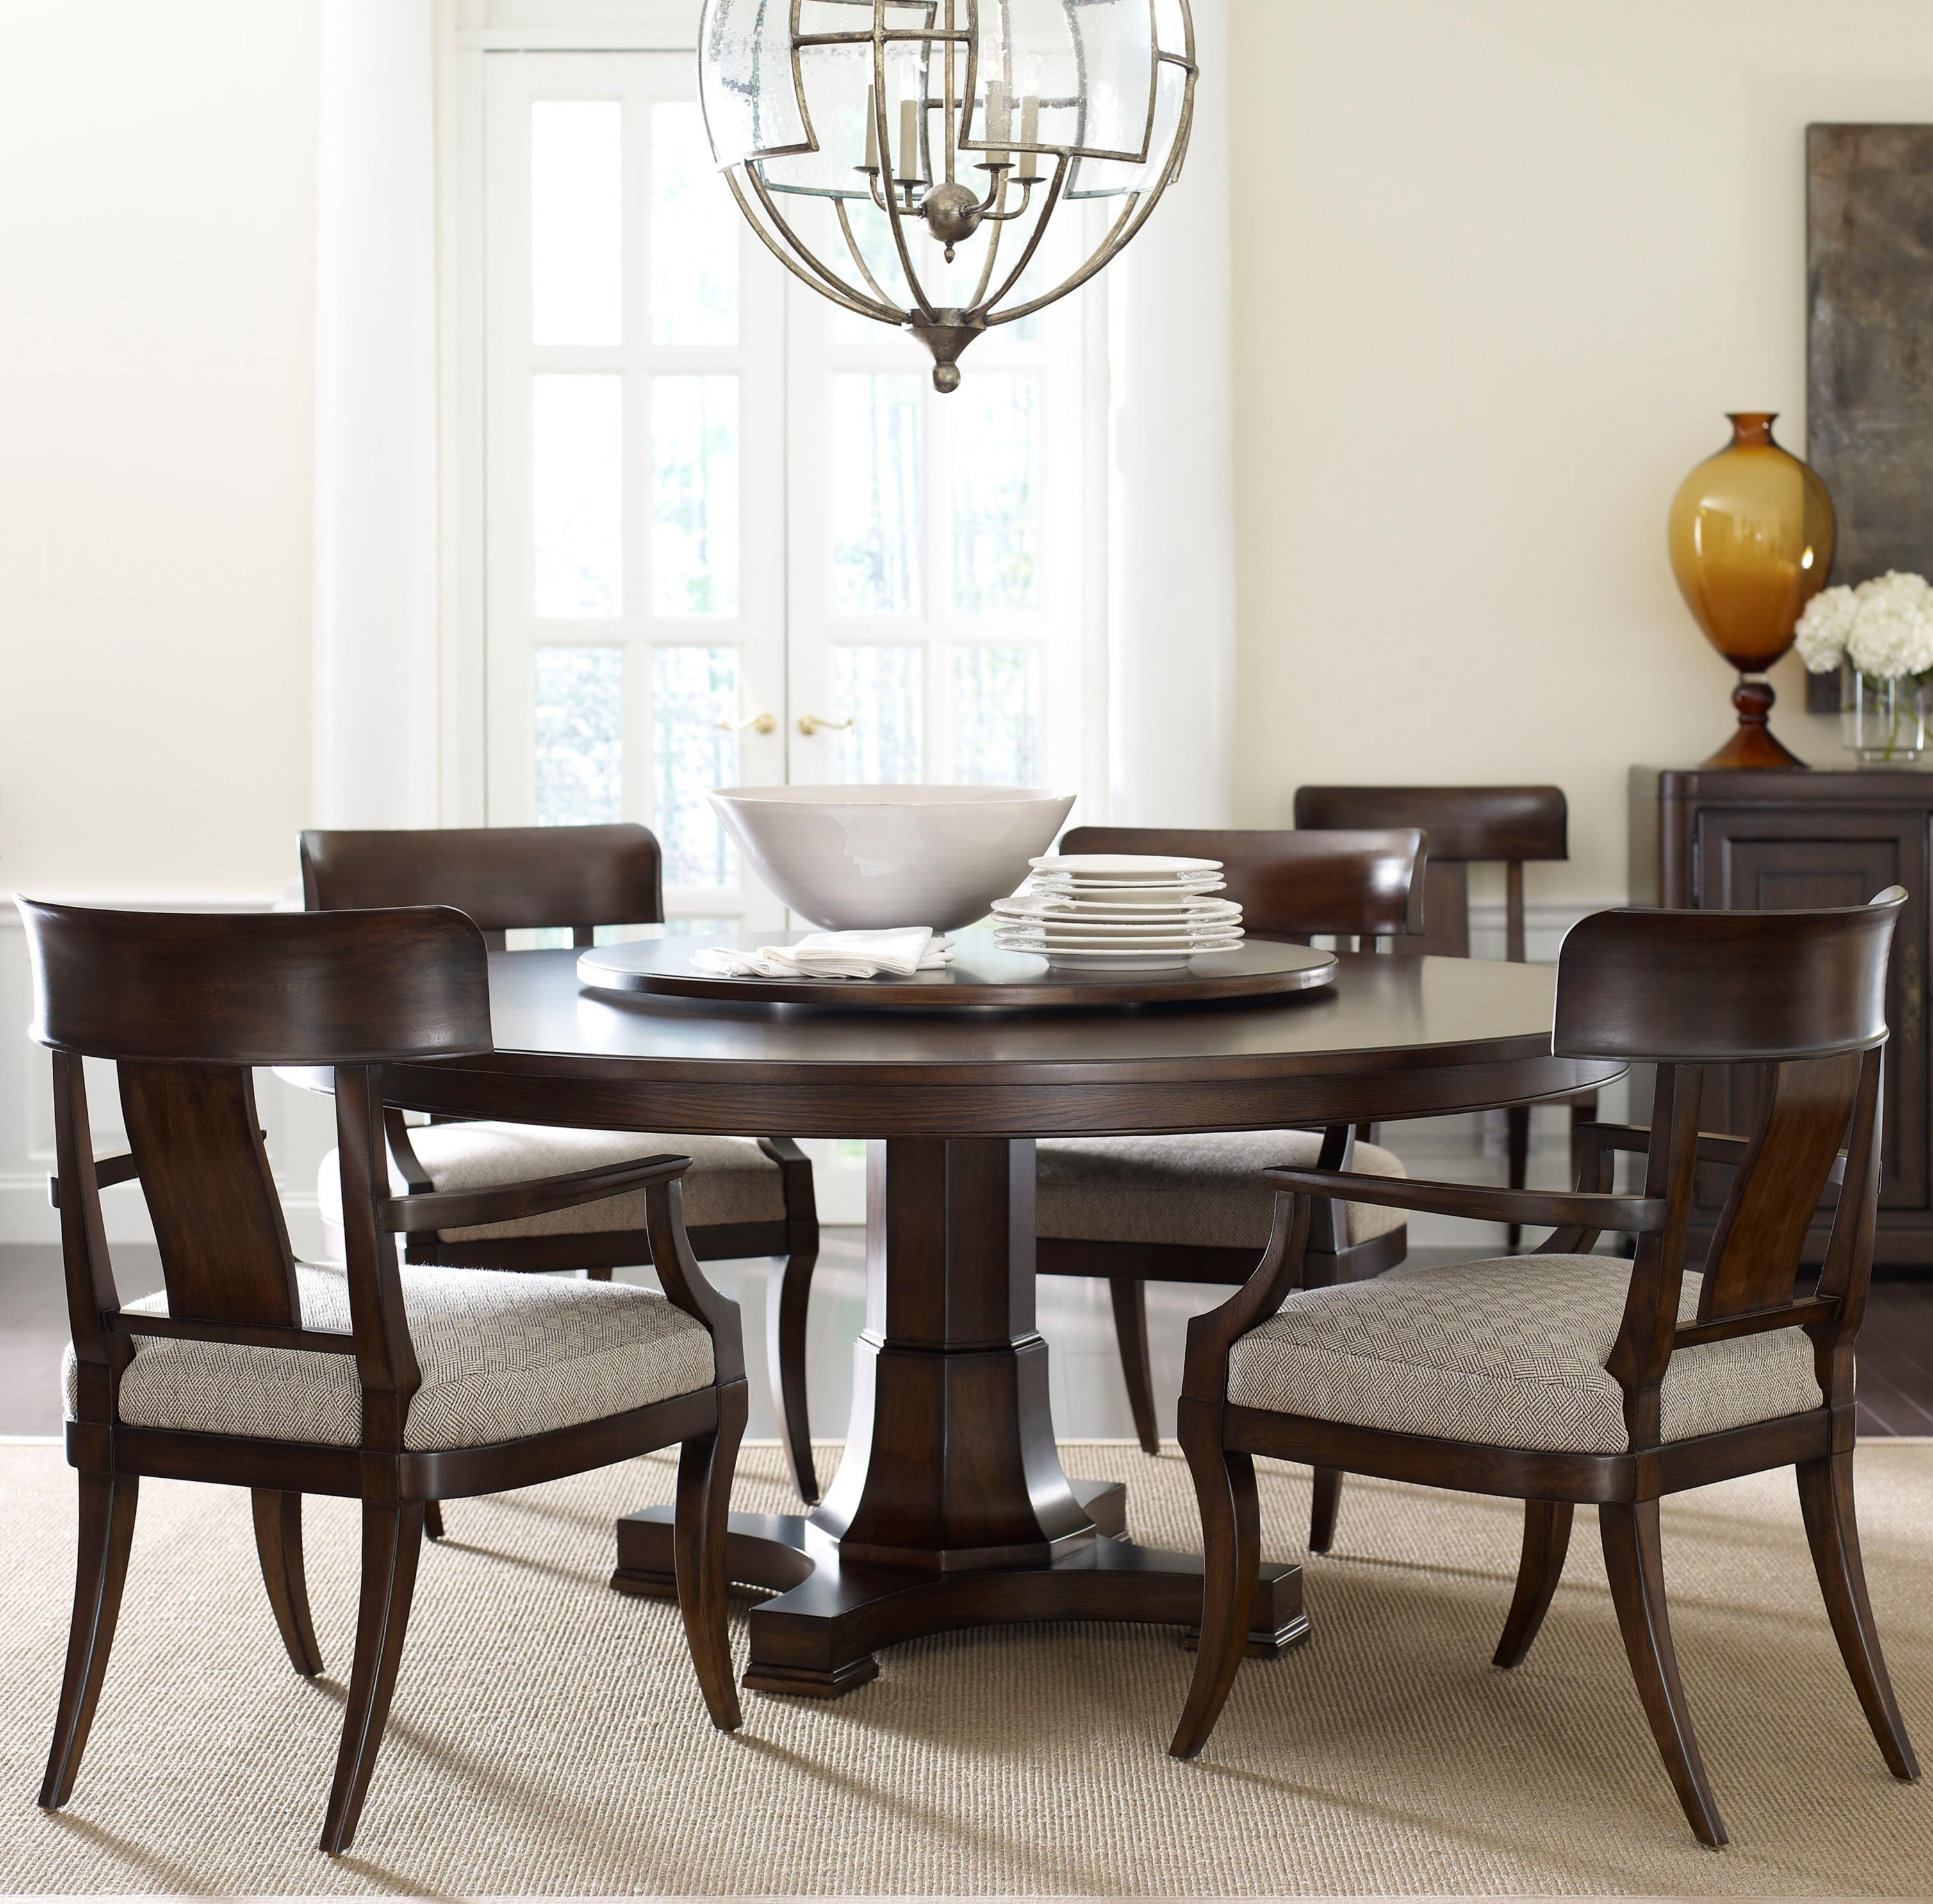 Thomasville harlowe finch five piece adelaide dining set with lazy susan stuckey furniture dining 5 piece set